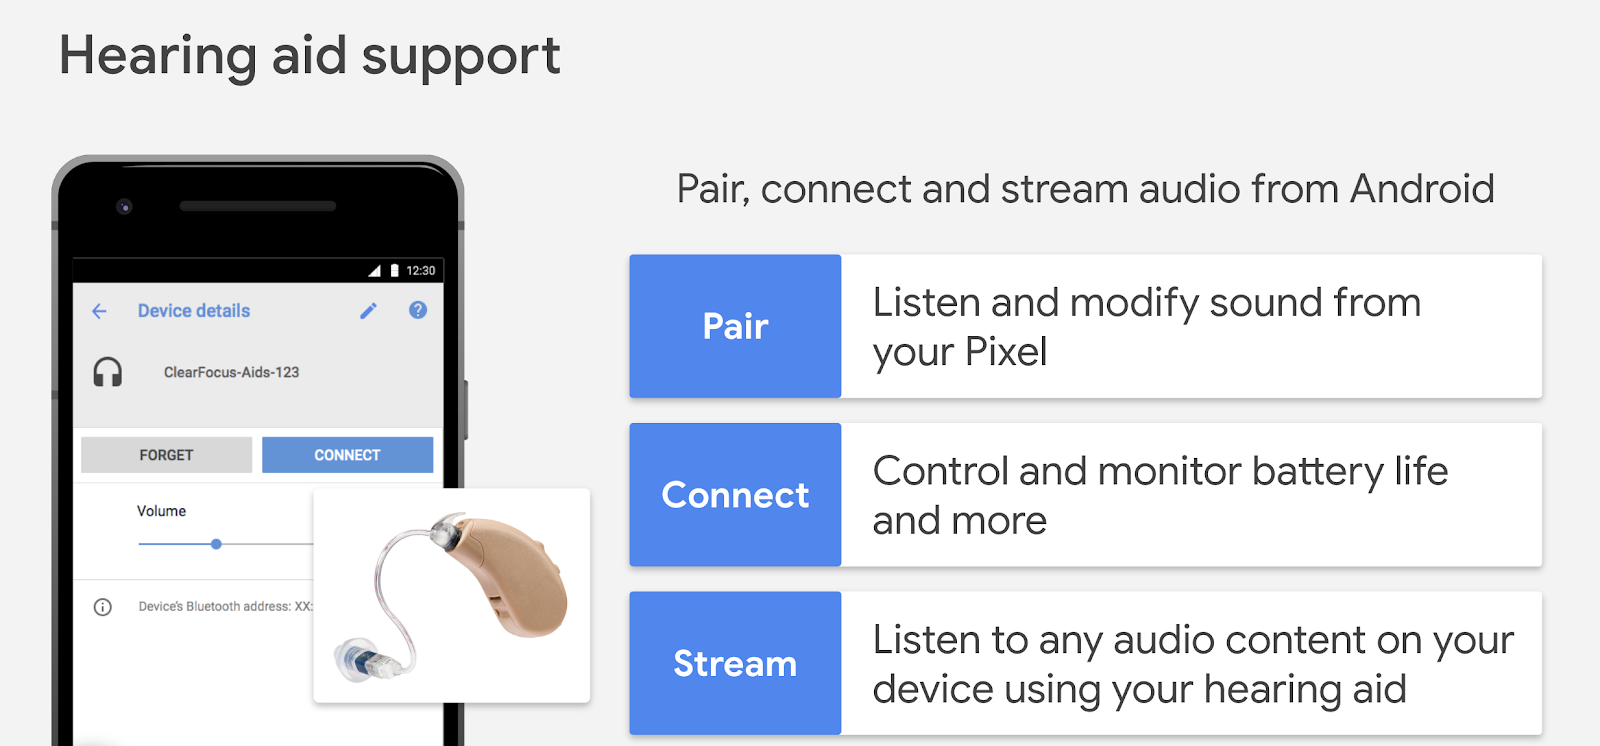 Android Developers Blog: Streaming support spec for hearing aids on